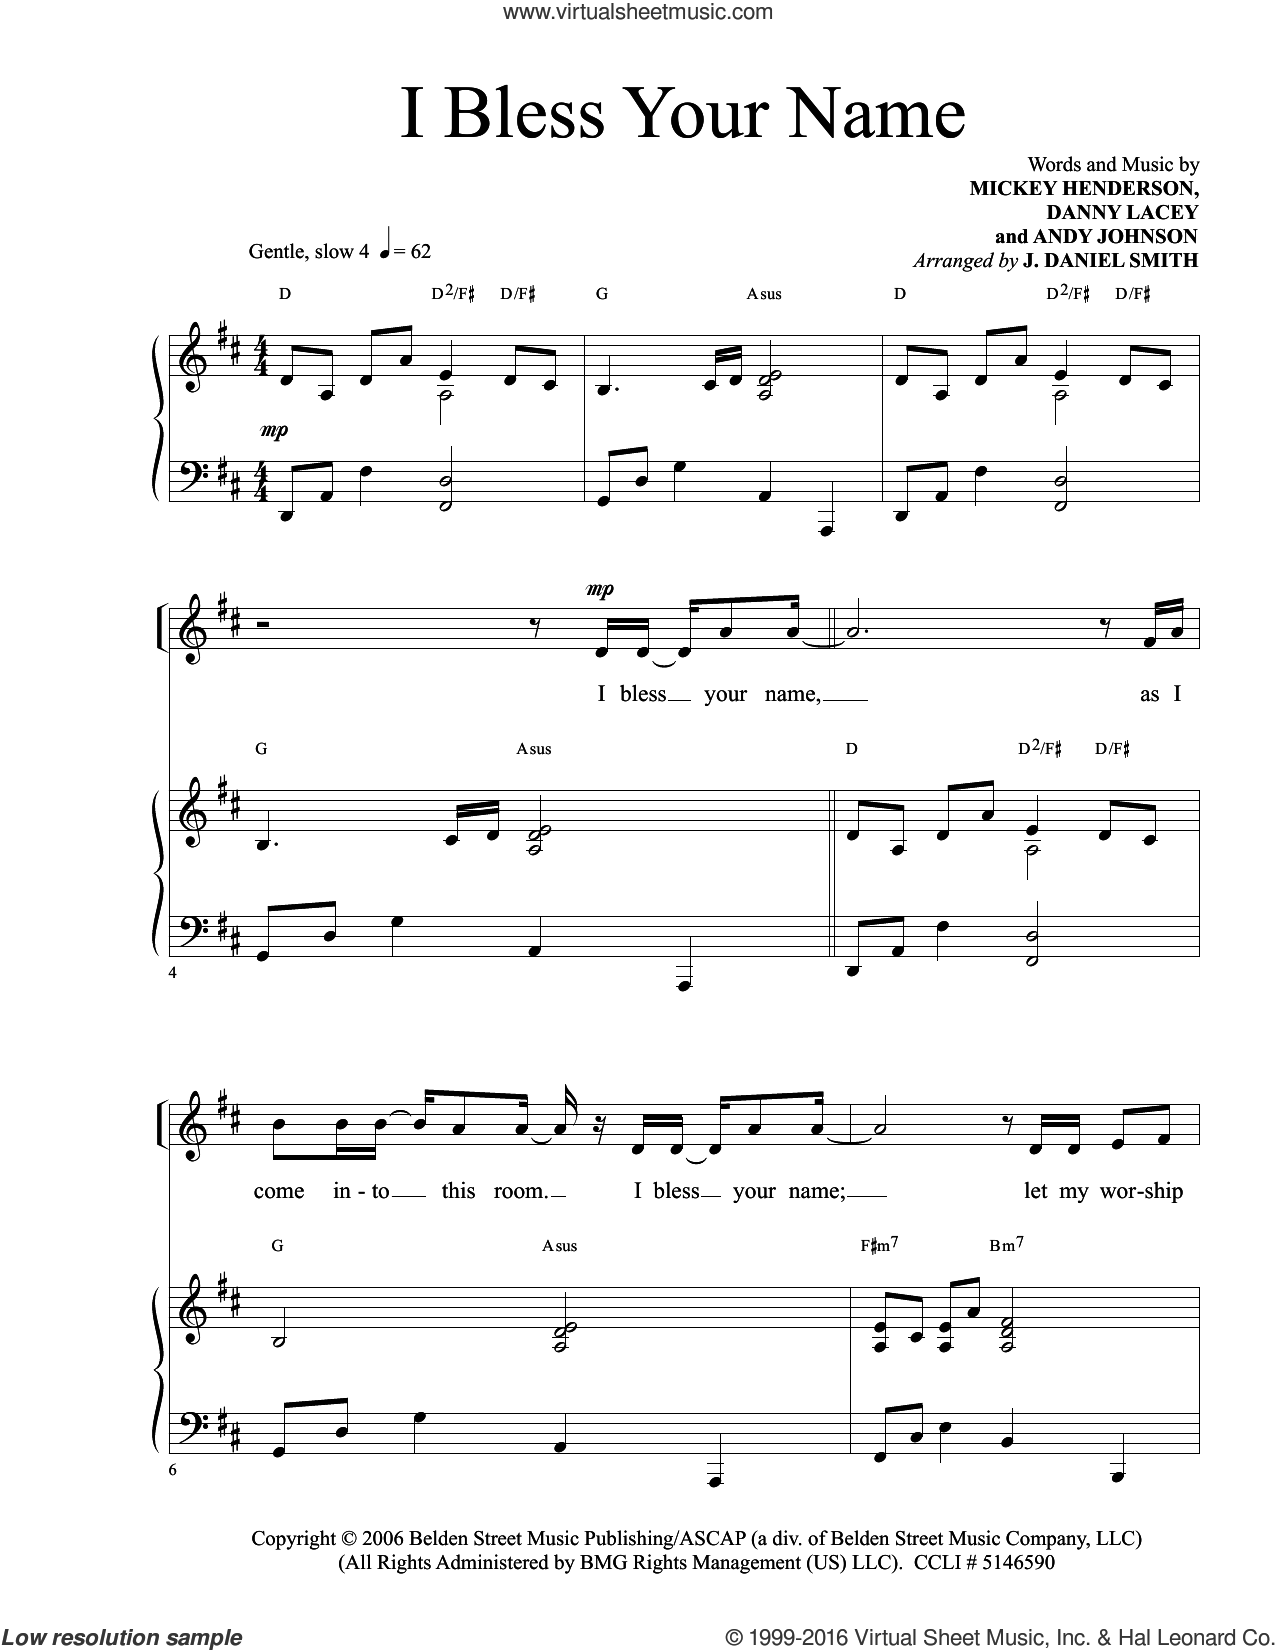 I Bless Your Name sheet music for voice and piano by Danny Lacey. Score Image Preview.